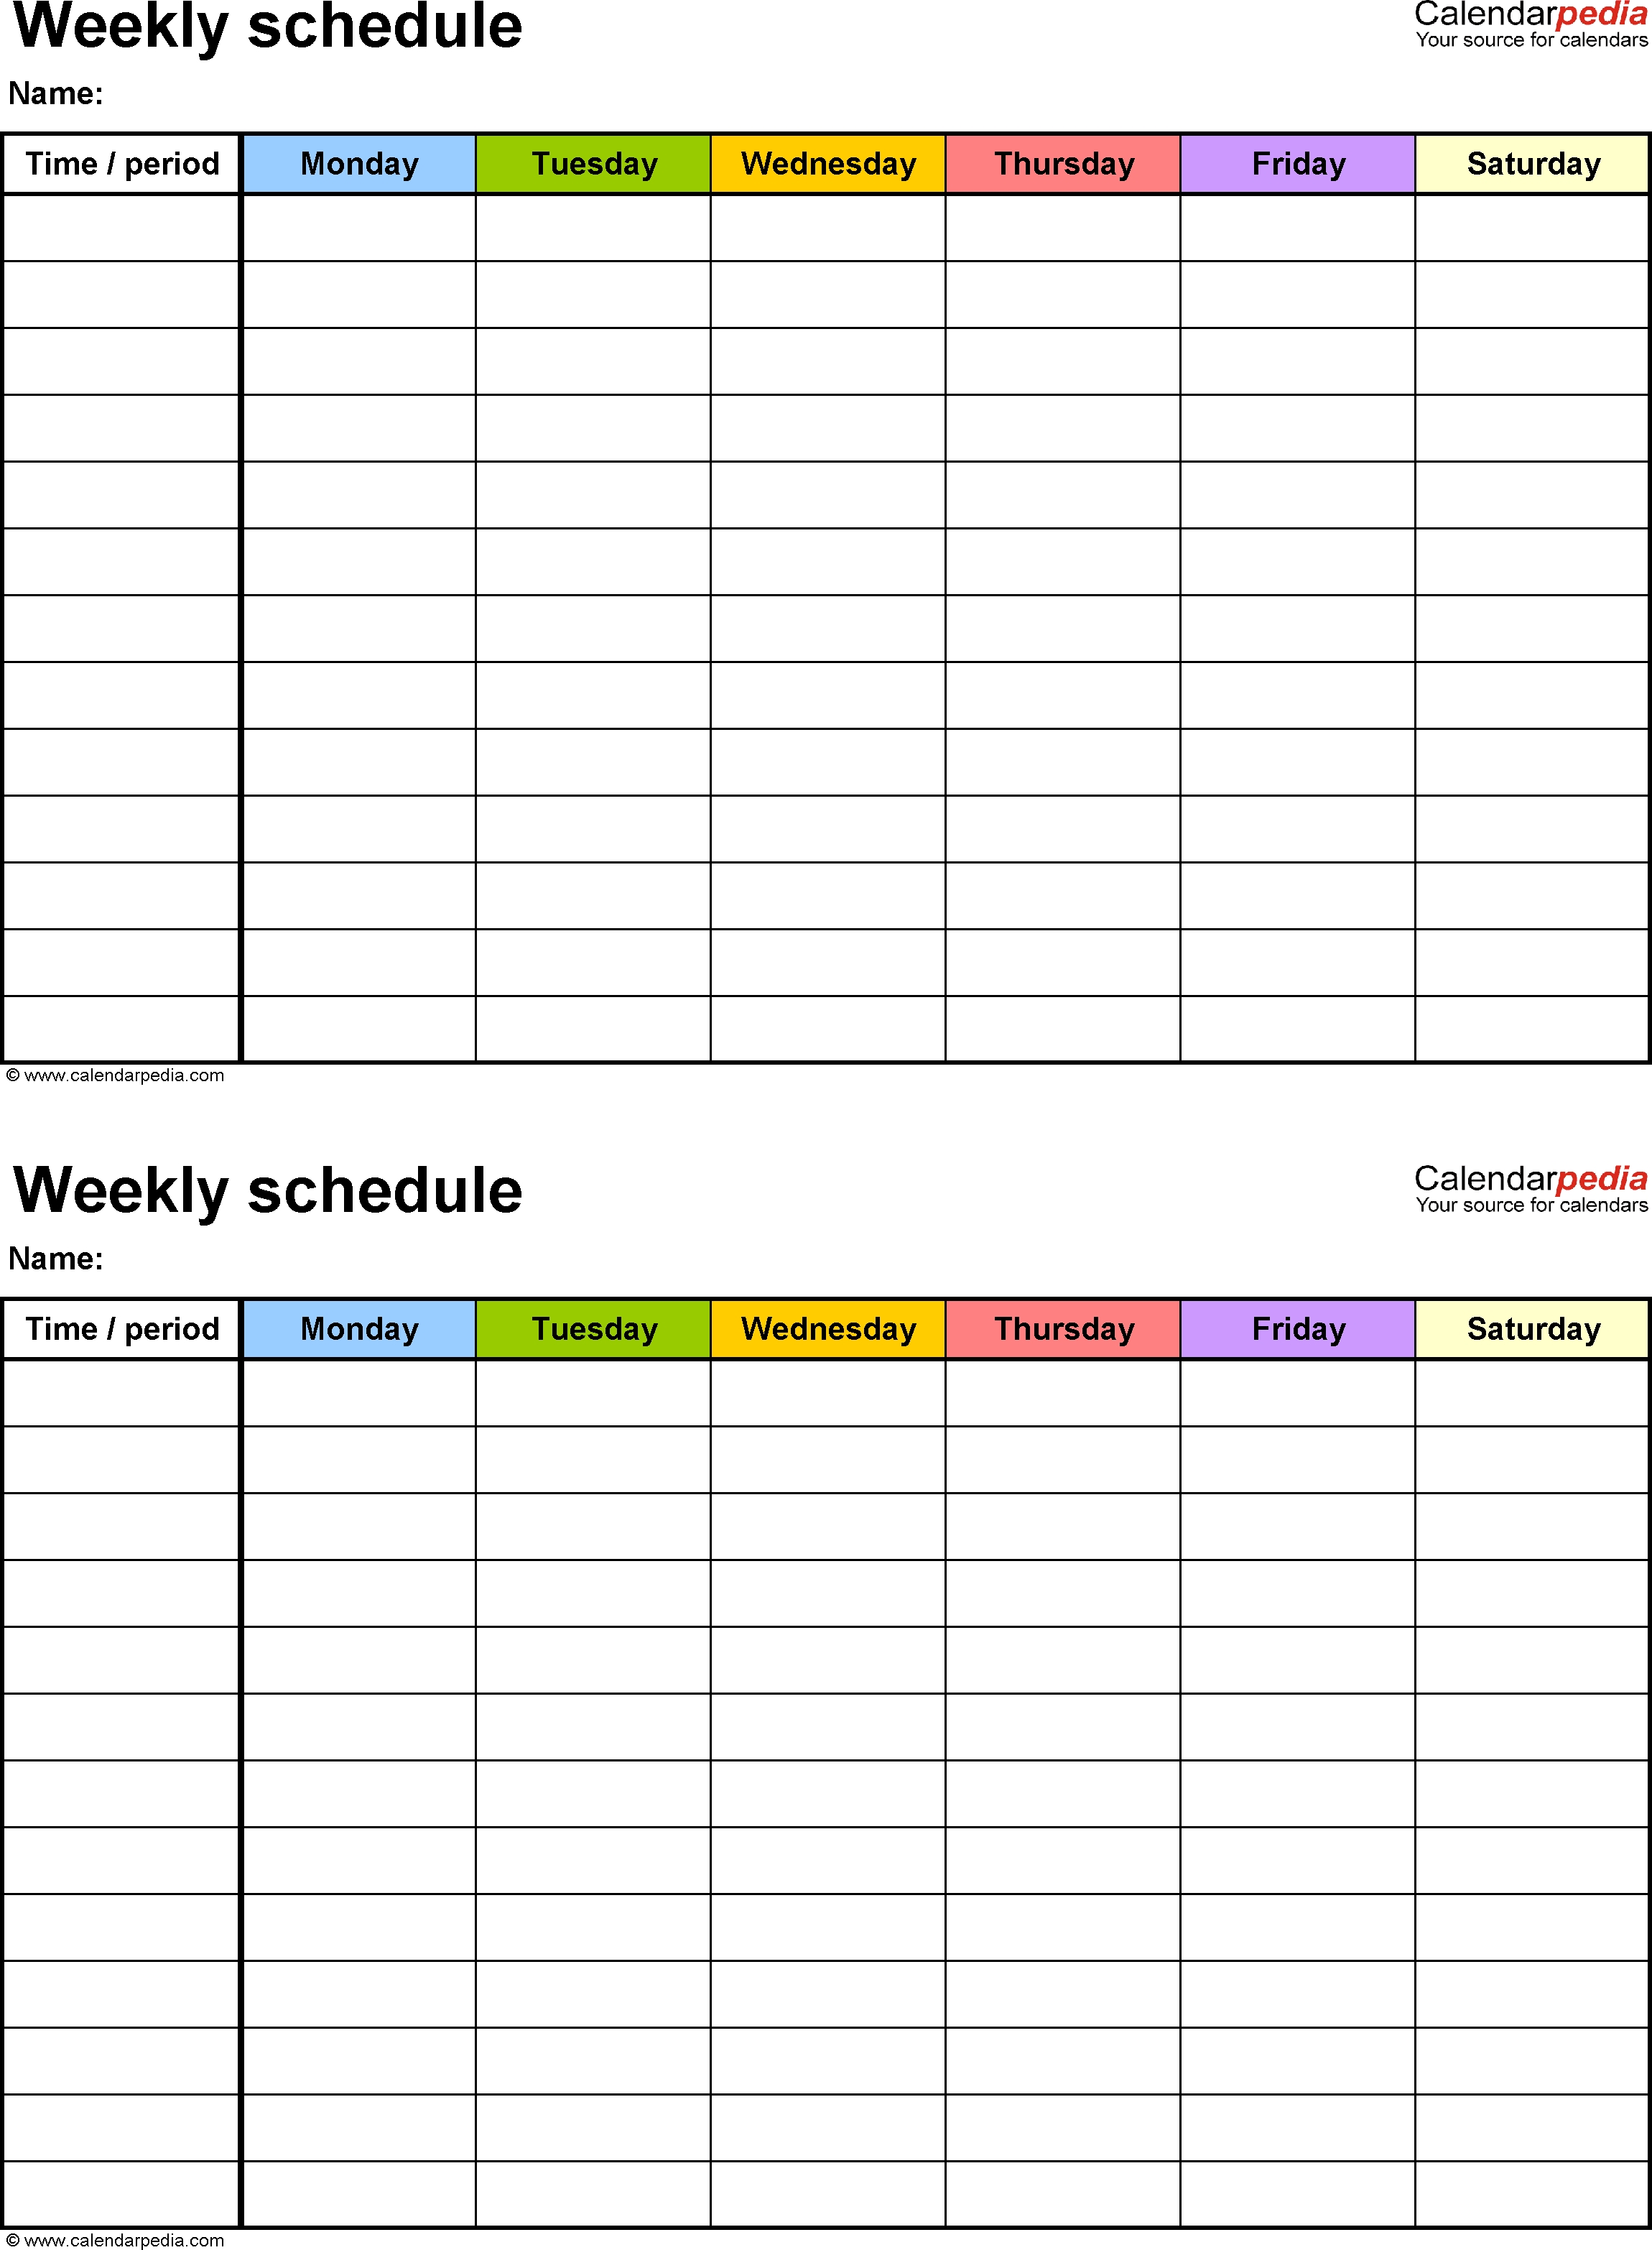 Free Weekly Schedule Templates For Word - 18 Templates  Monday To Friday Weekly Planner